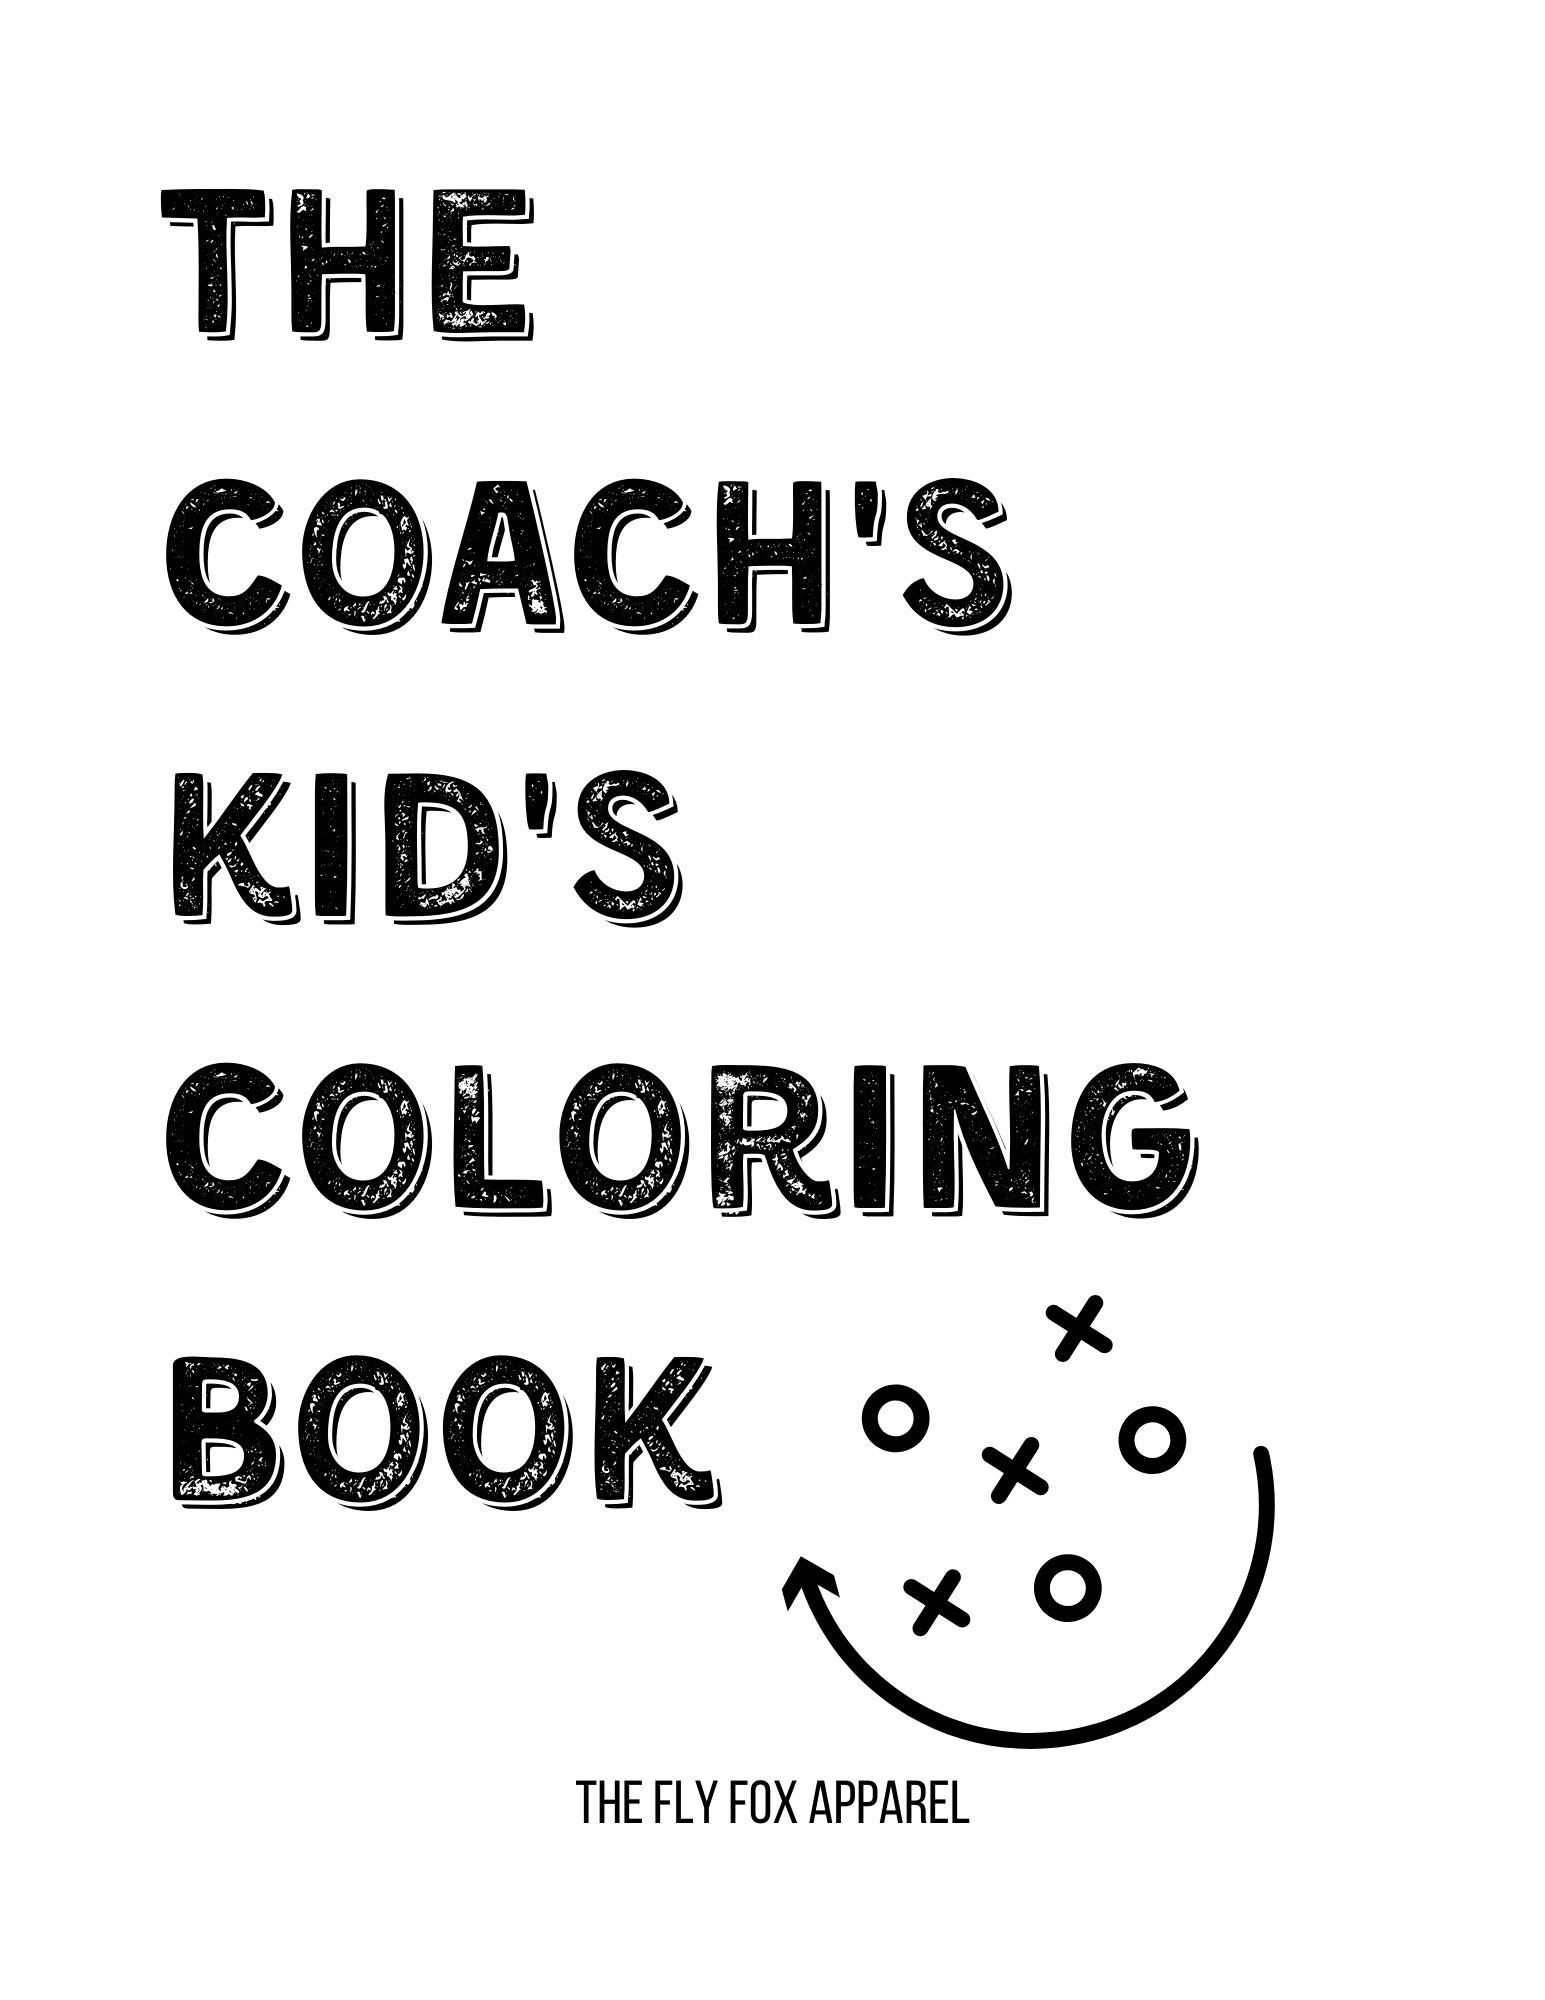 Coach S Kid S Coloring Book Coloring Pages Sports Etsy In 2020 Kids Coloring Books Coloring For Kids Coloring Books